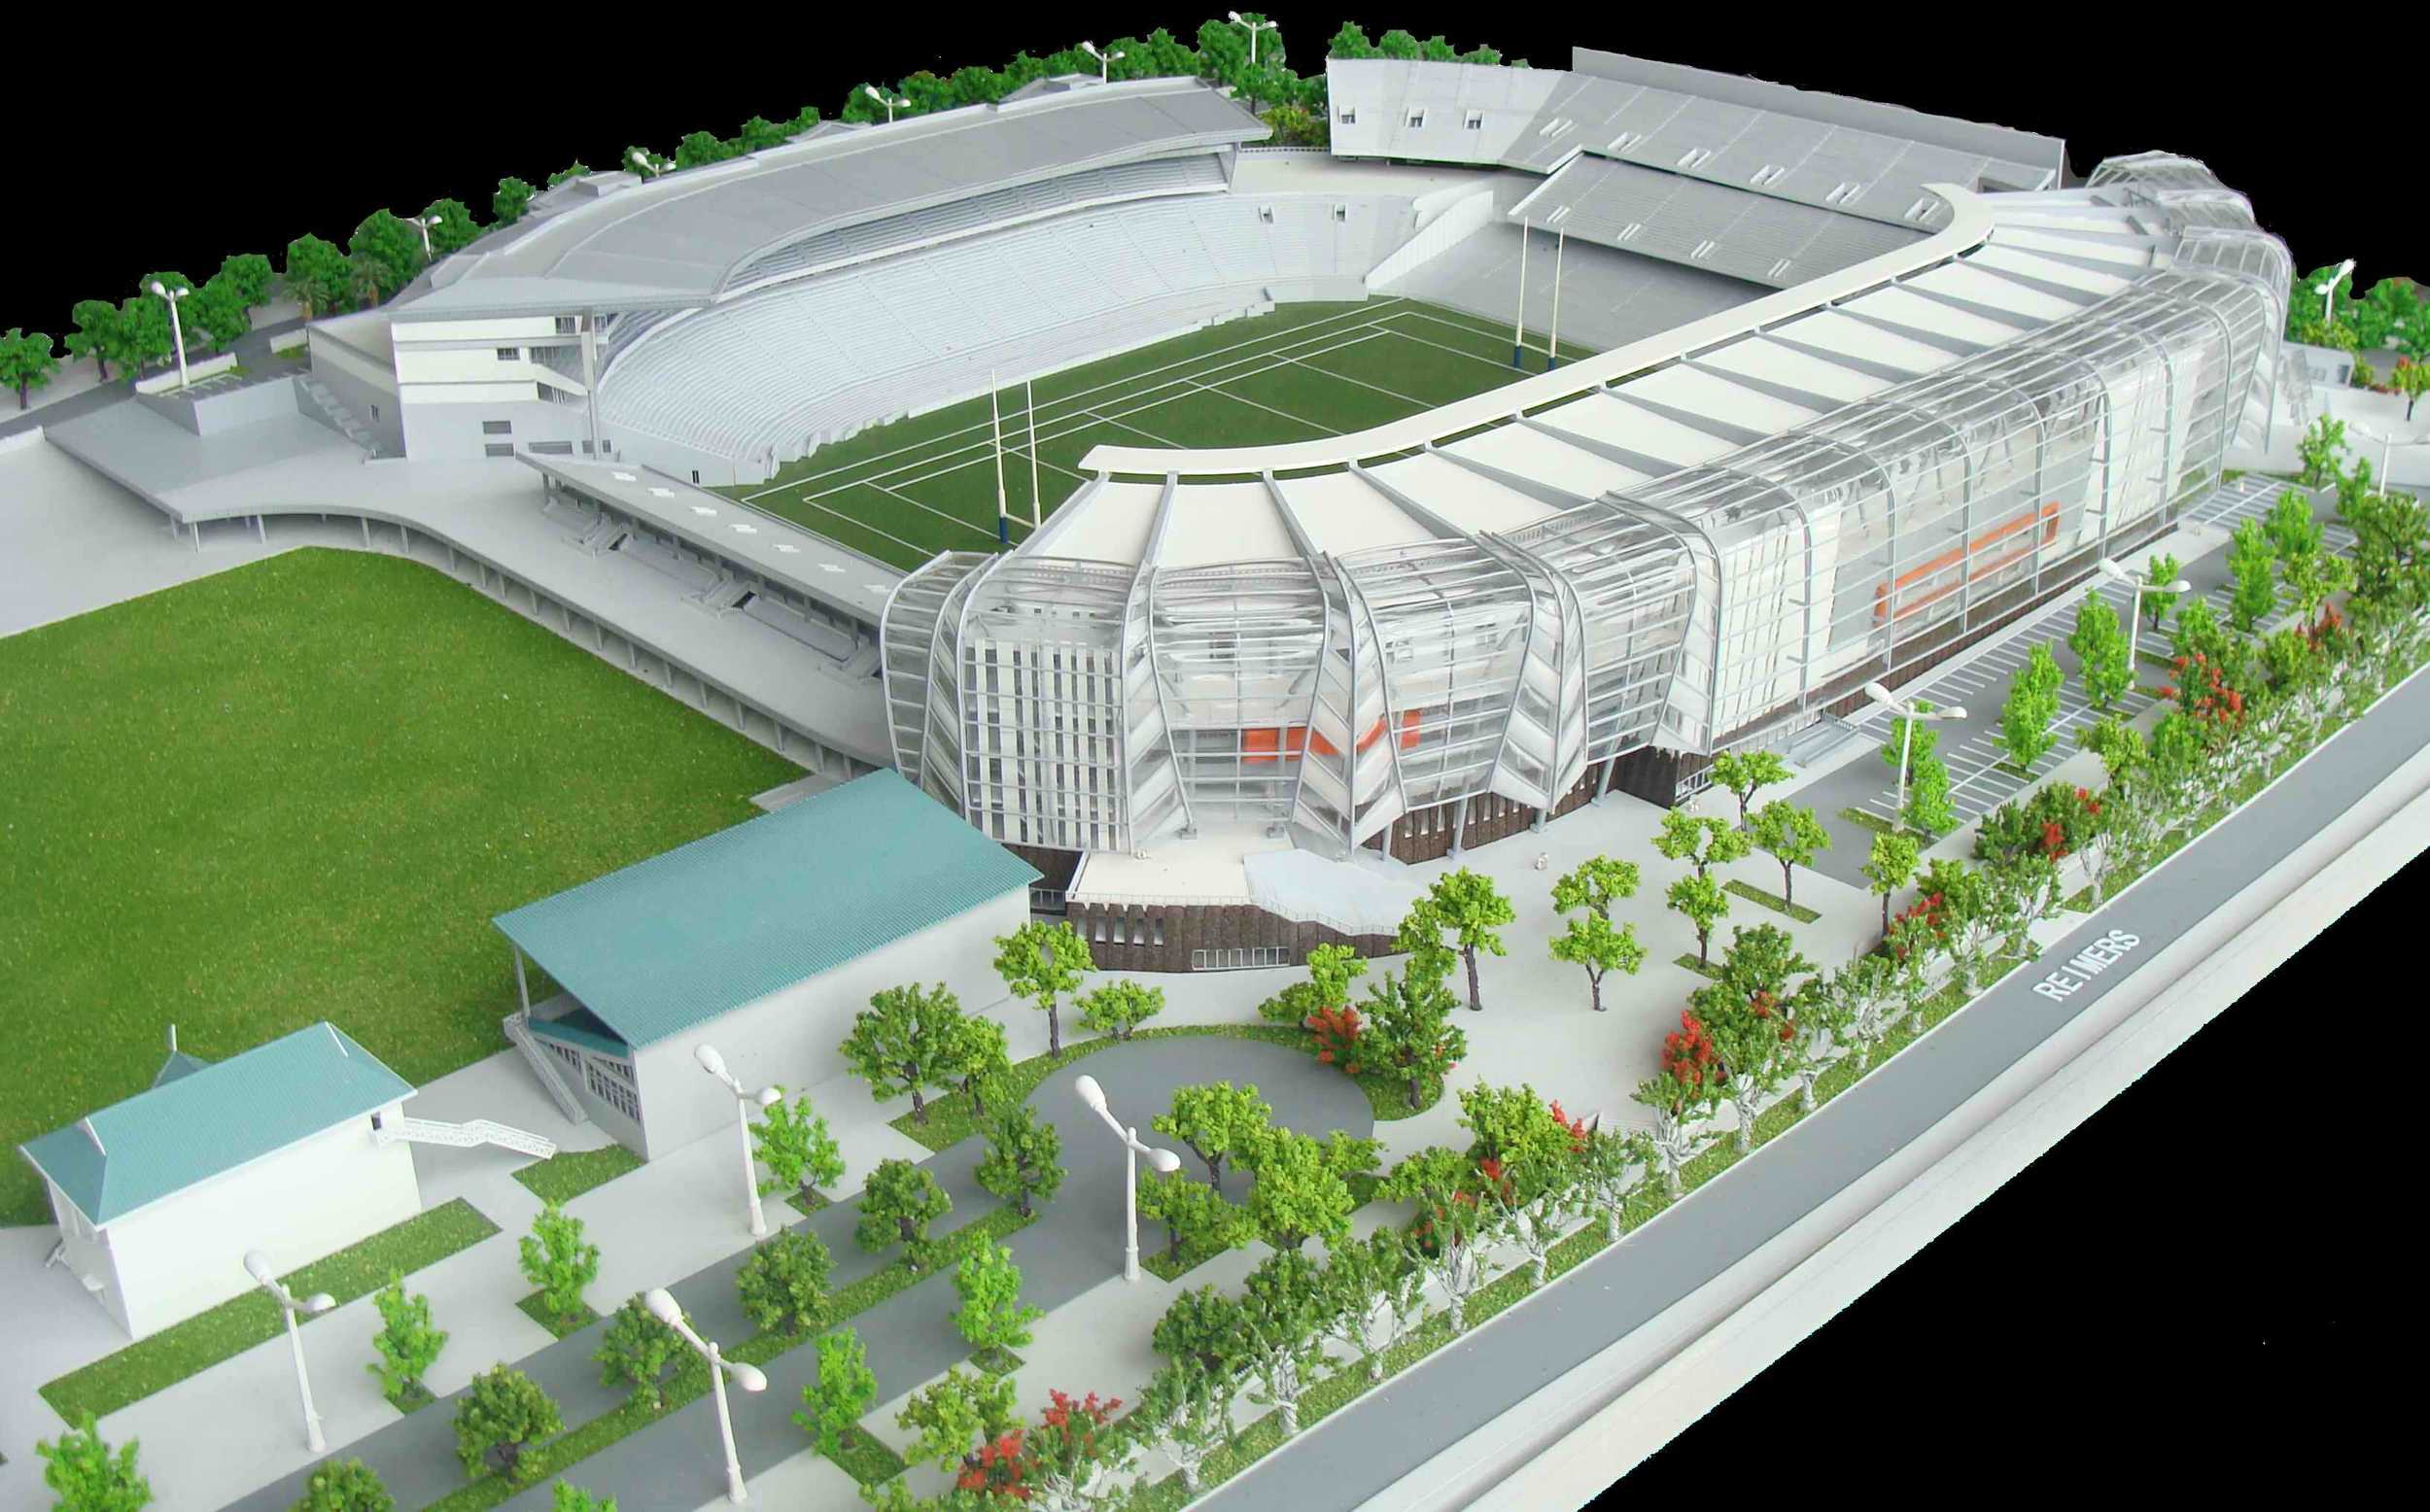 Eden Park - Rugby World Cup 2011 Stadium Model by The Model Workshop.jpg